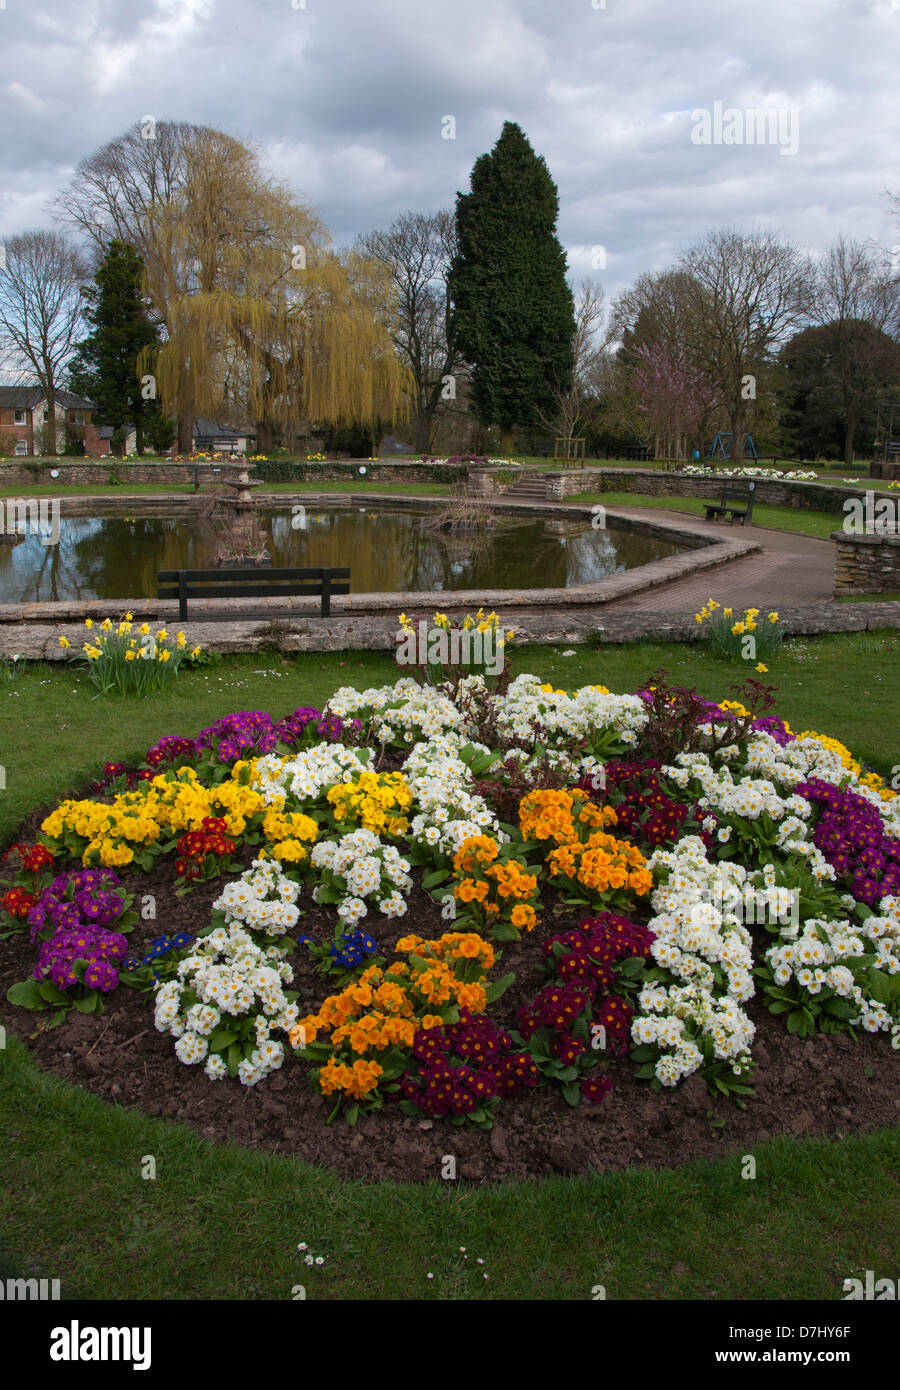 Public Garden Flower Beds Stock Photos & Public Garden Flower Beds ...